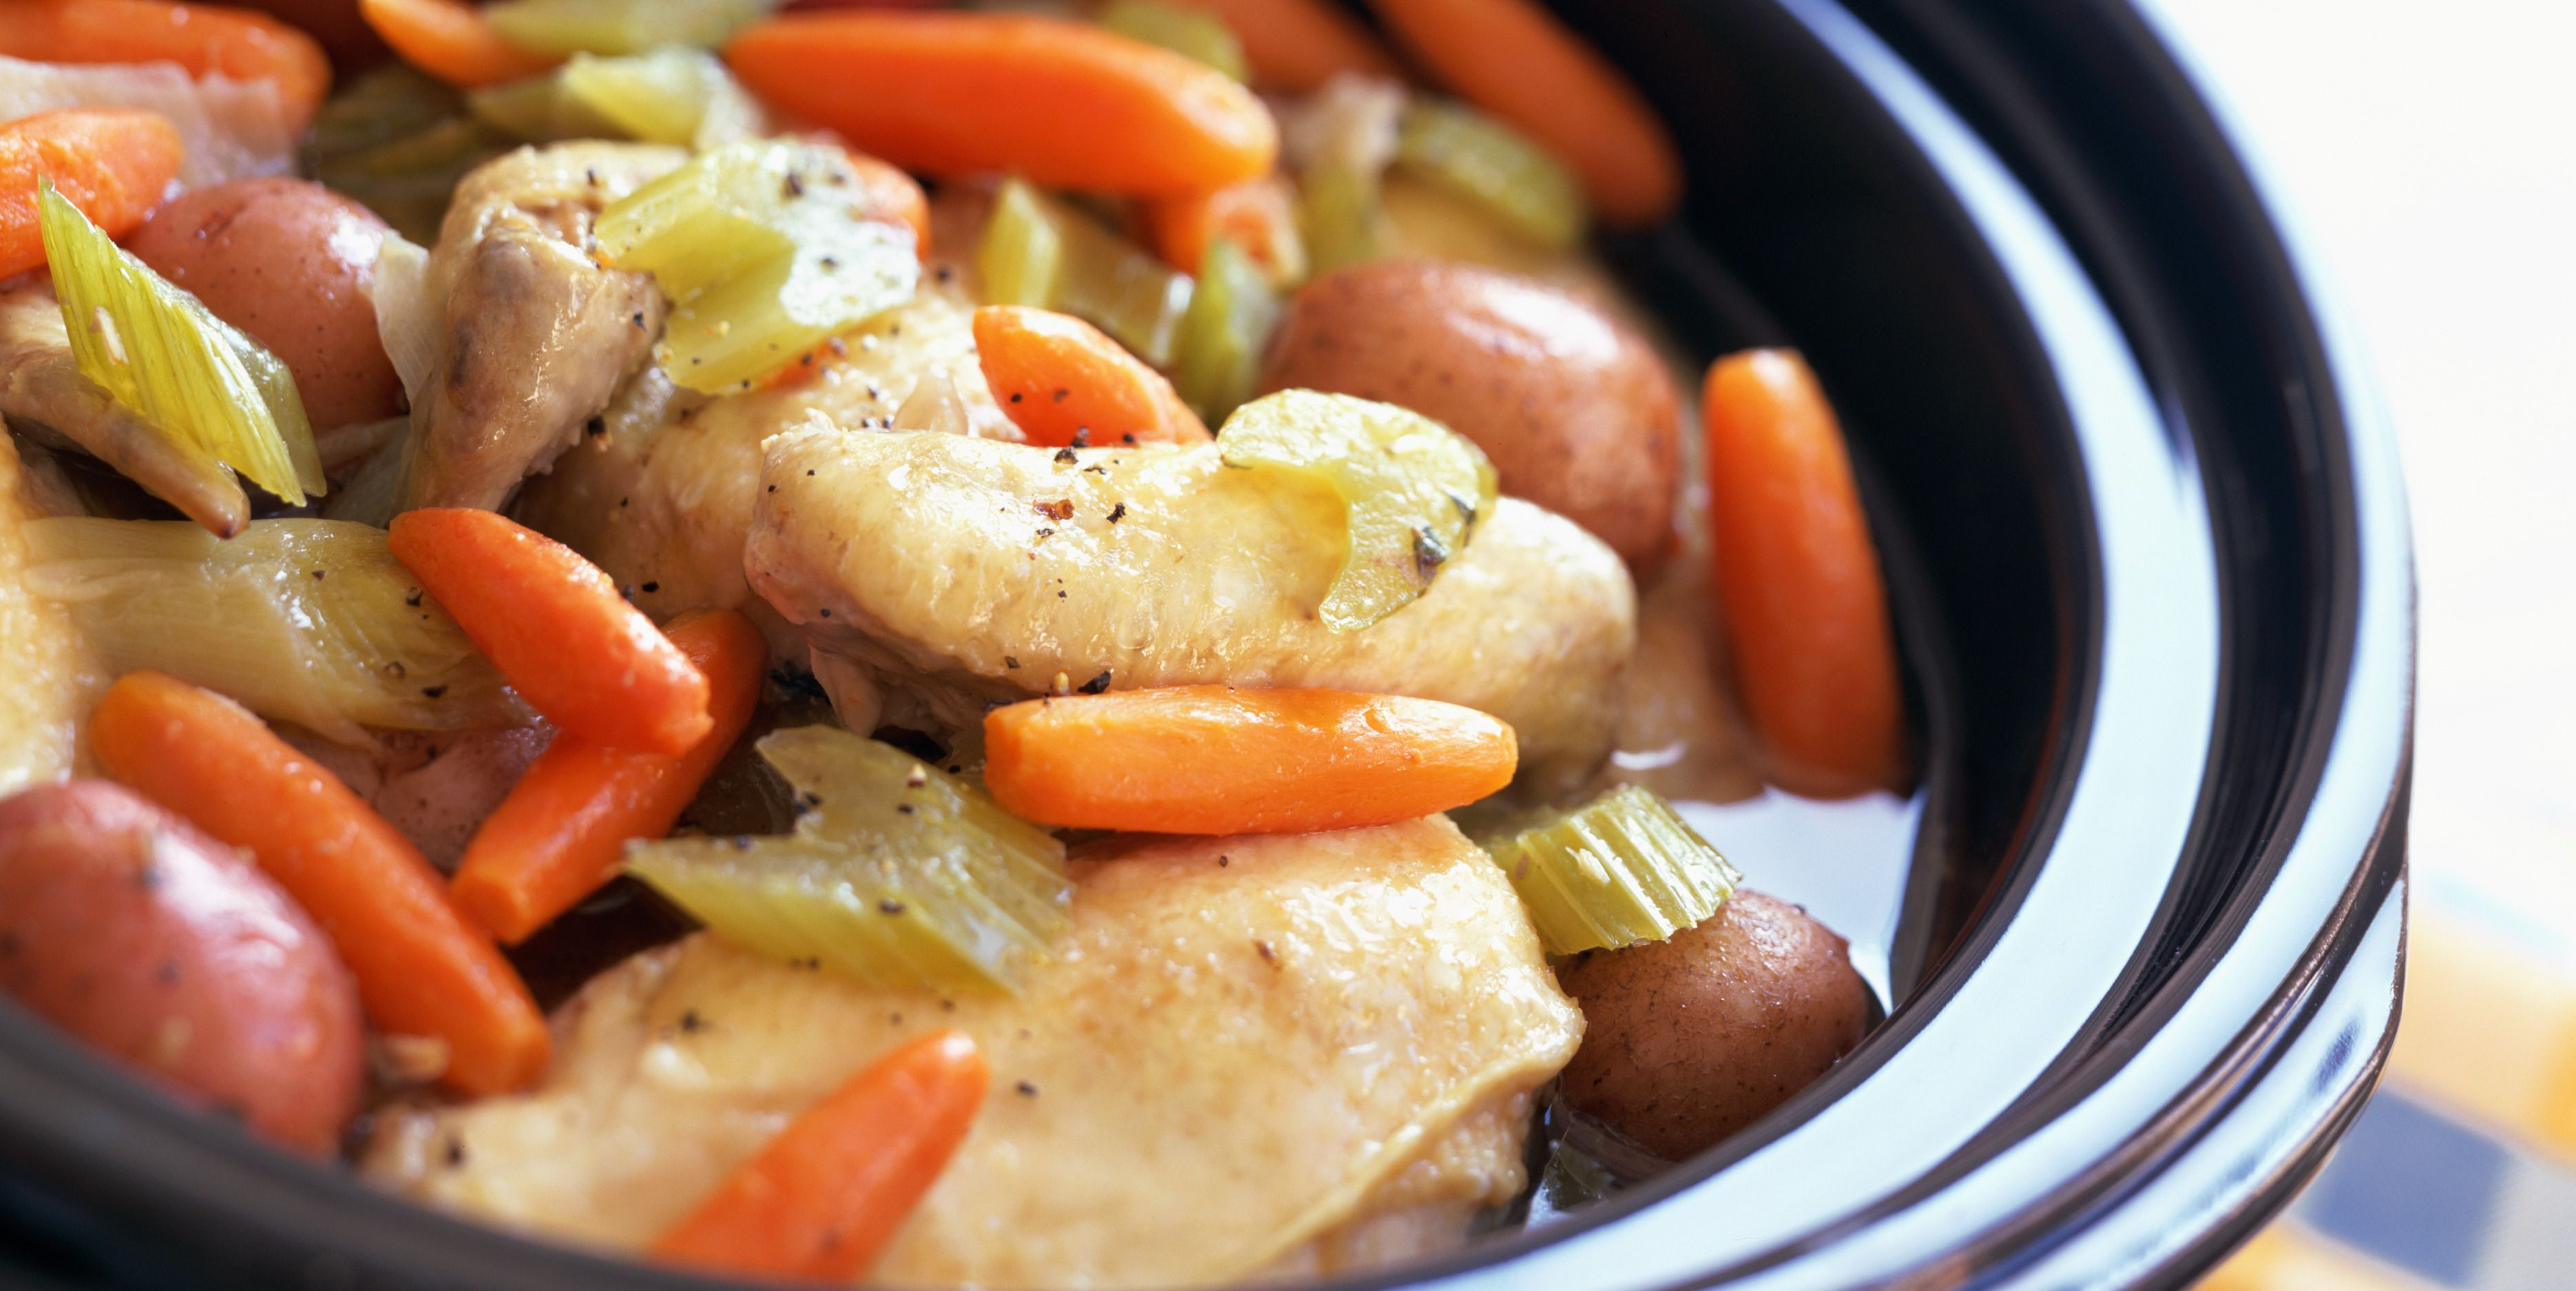 If You've Been Cooking Frozen Chicken In A CrockPot, I've Got Some Really Bad News For You